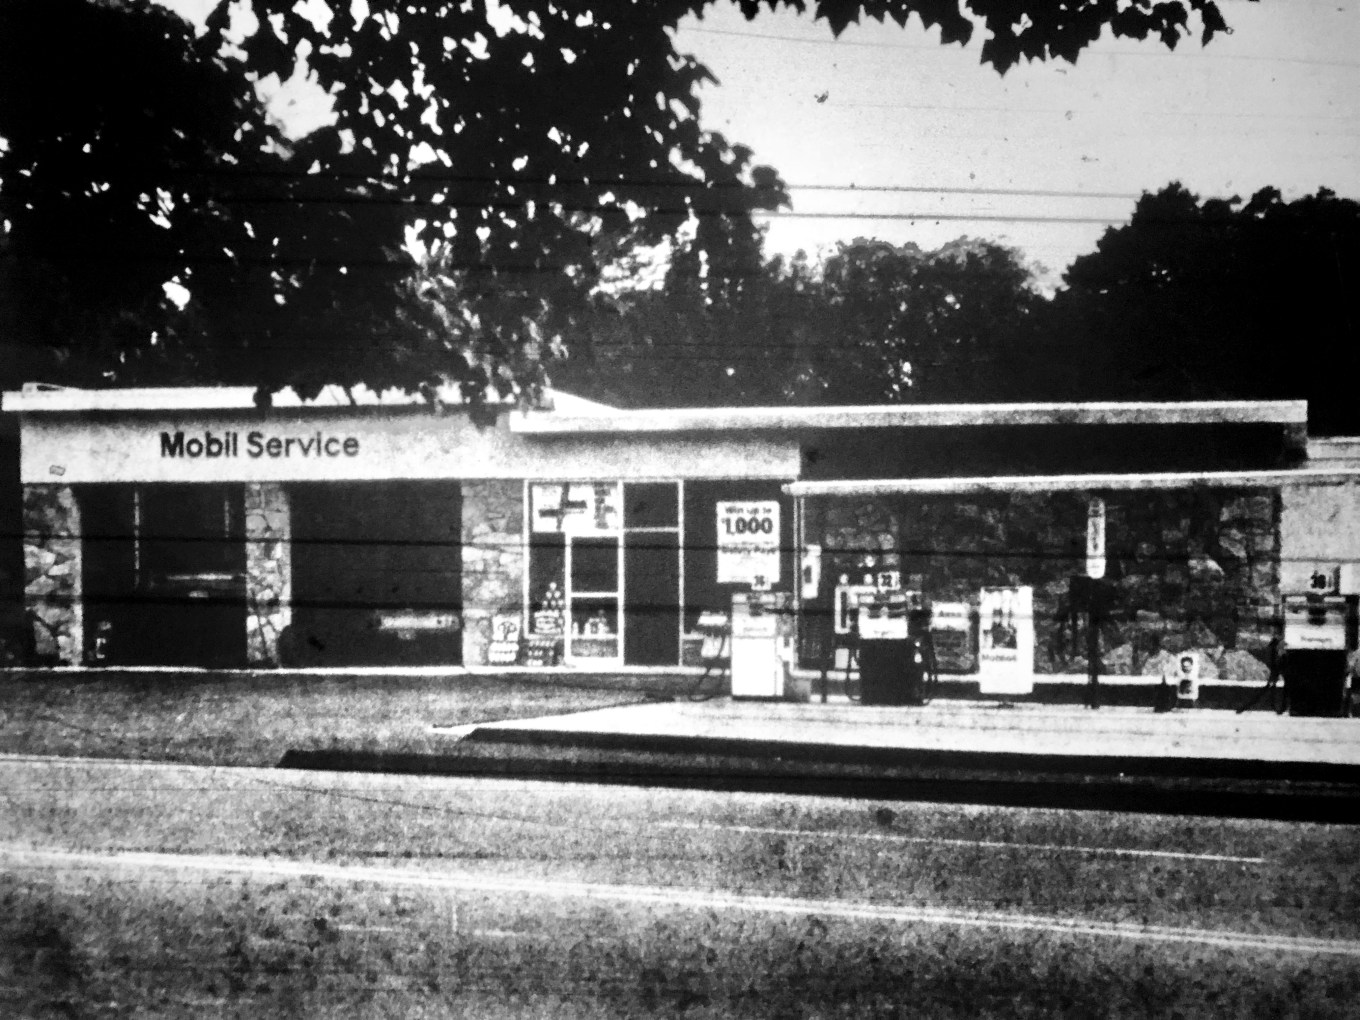 3A Service Station, where Lester's Roadside BBQ is now, Burlington MA